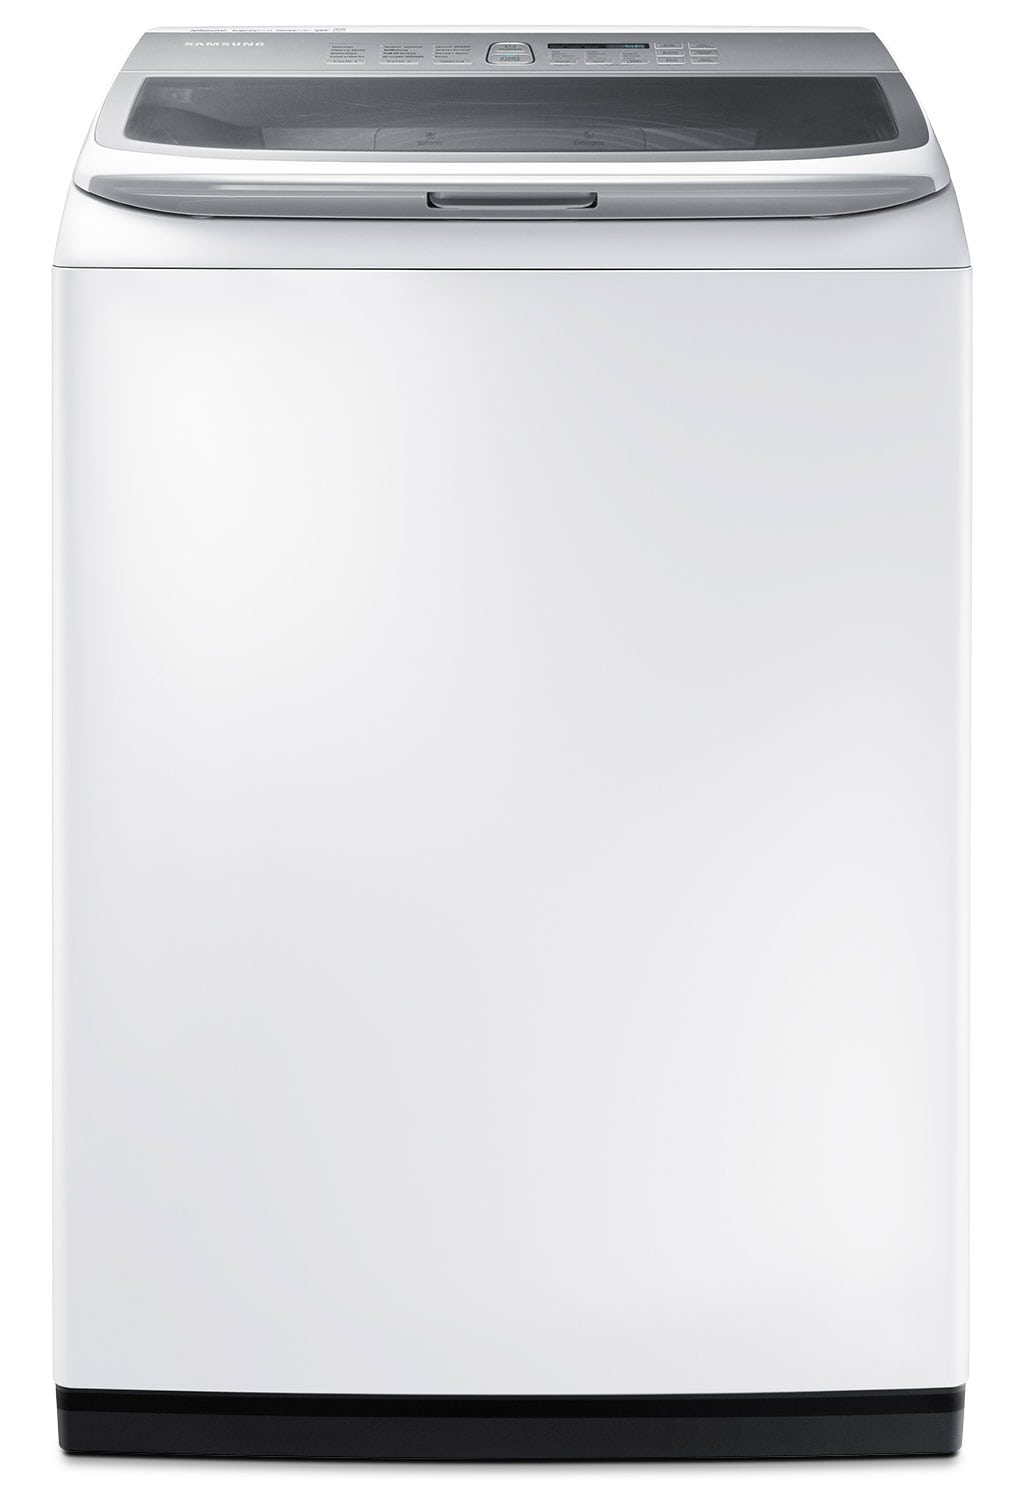 Samsung White Top-Load Washer (5.2 Cu. Ft.) - WA45K7600AW/A2